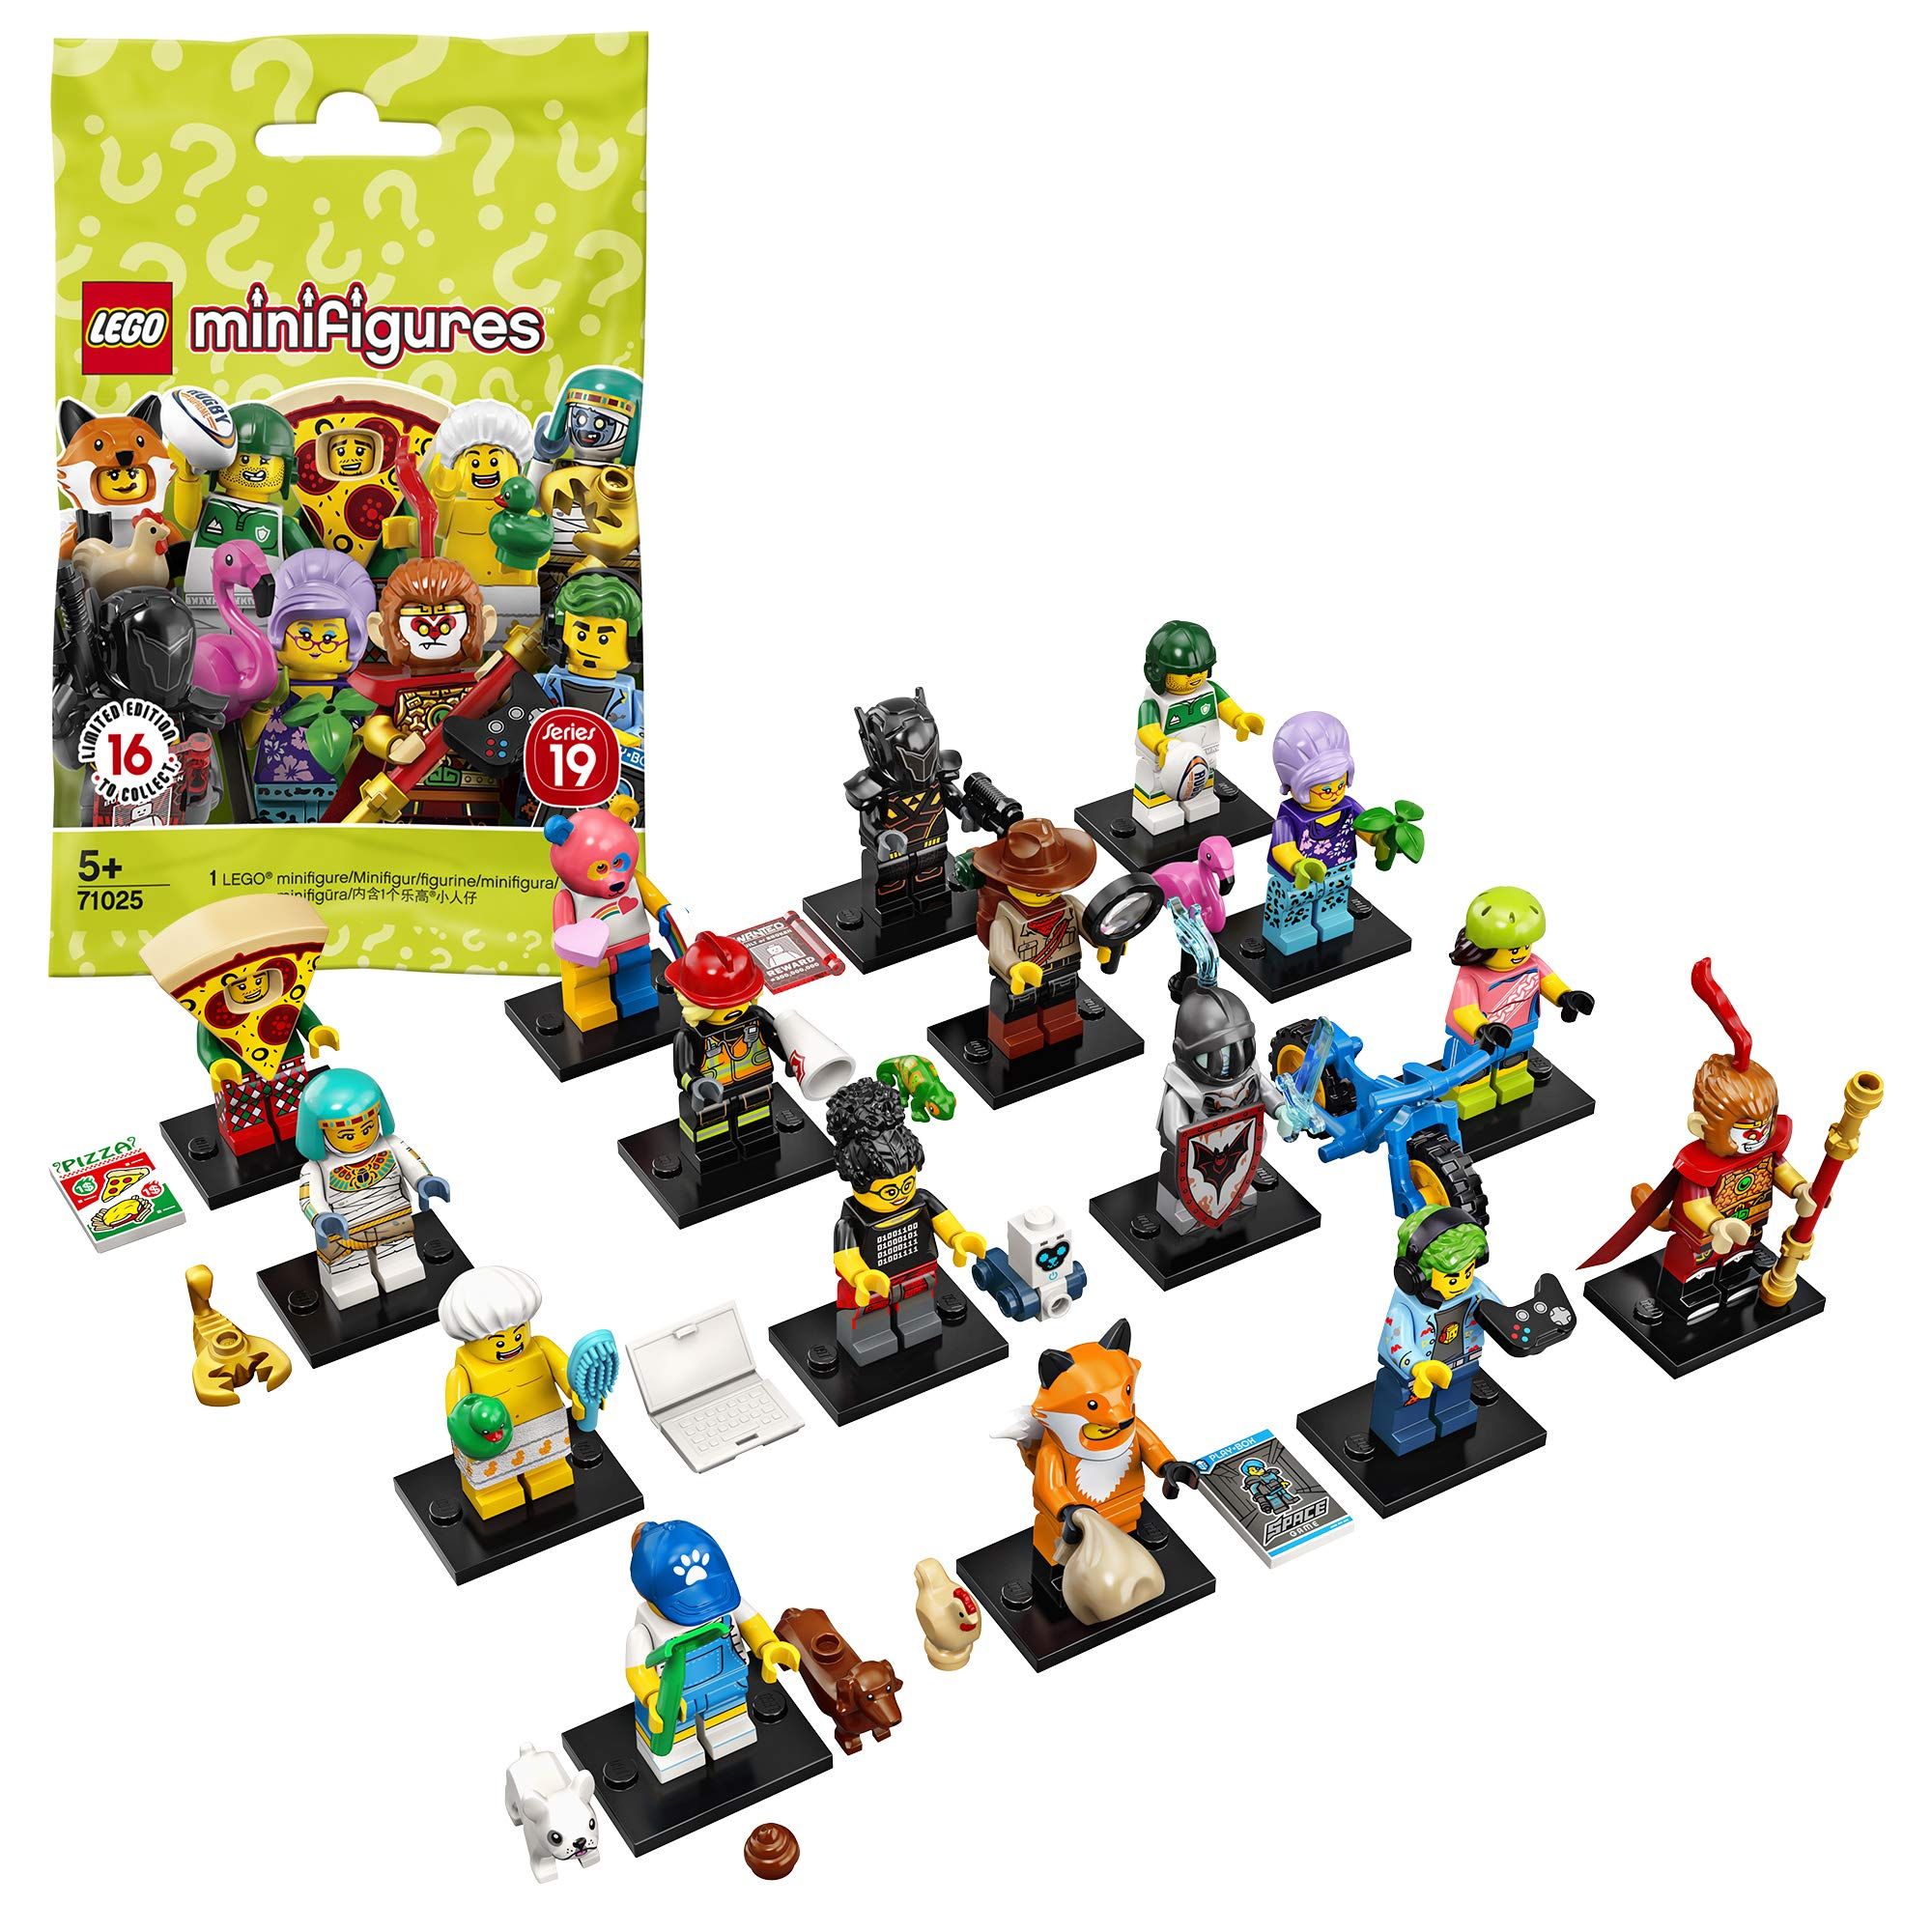 LEGO 71025 Minifigures Series 19, Collectible Toy, Variety of Styles (Style Picked at Random) - 1 Unit